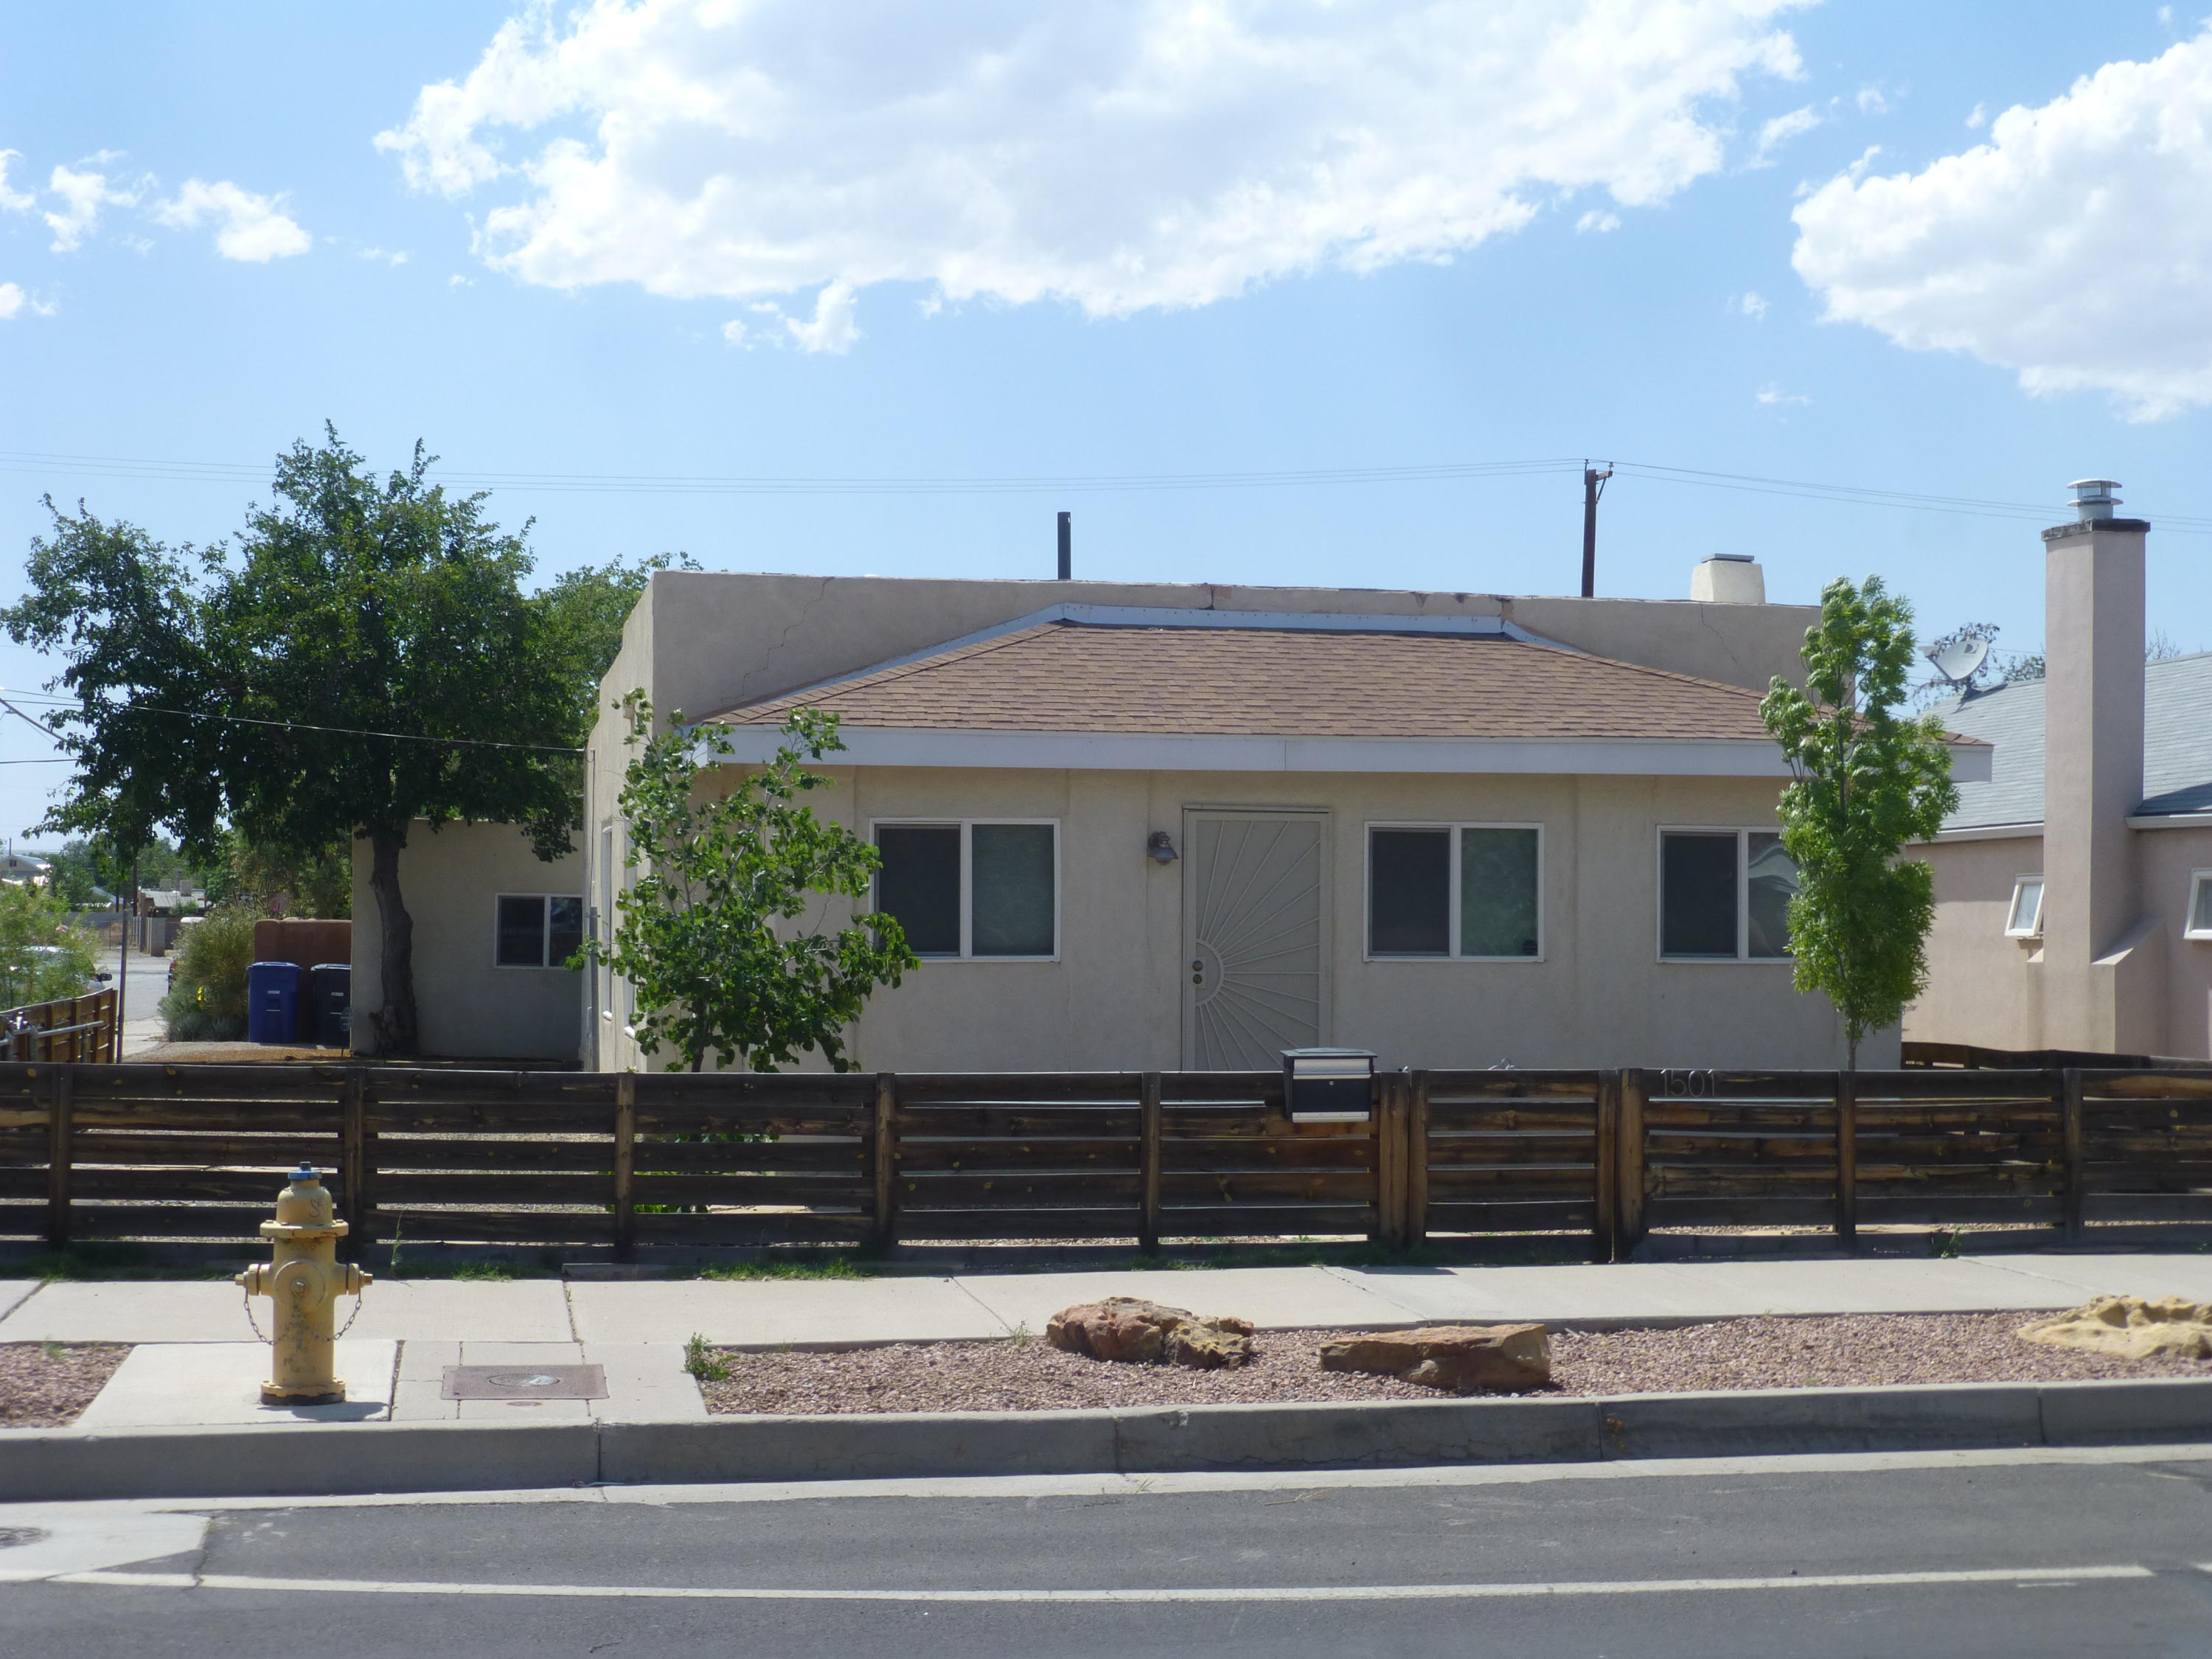 This one is a must see. Great home in a great location in downtown Albuquerque. Refrigerated air for those hot summer days. Nice backyard for entertaining. Stainless appliances in kitchen. Original wood floors. Newer TPO roof, Newer windows, New water heater.